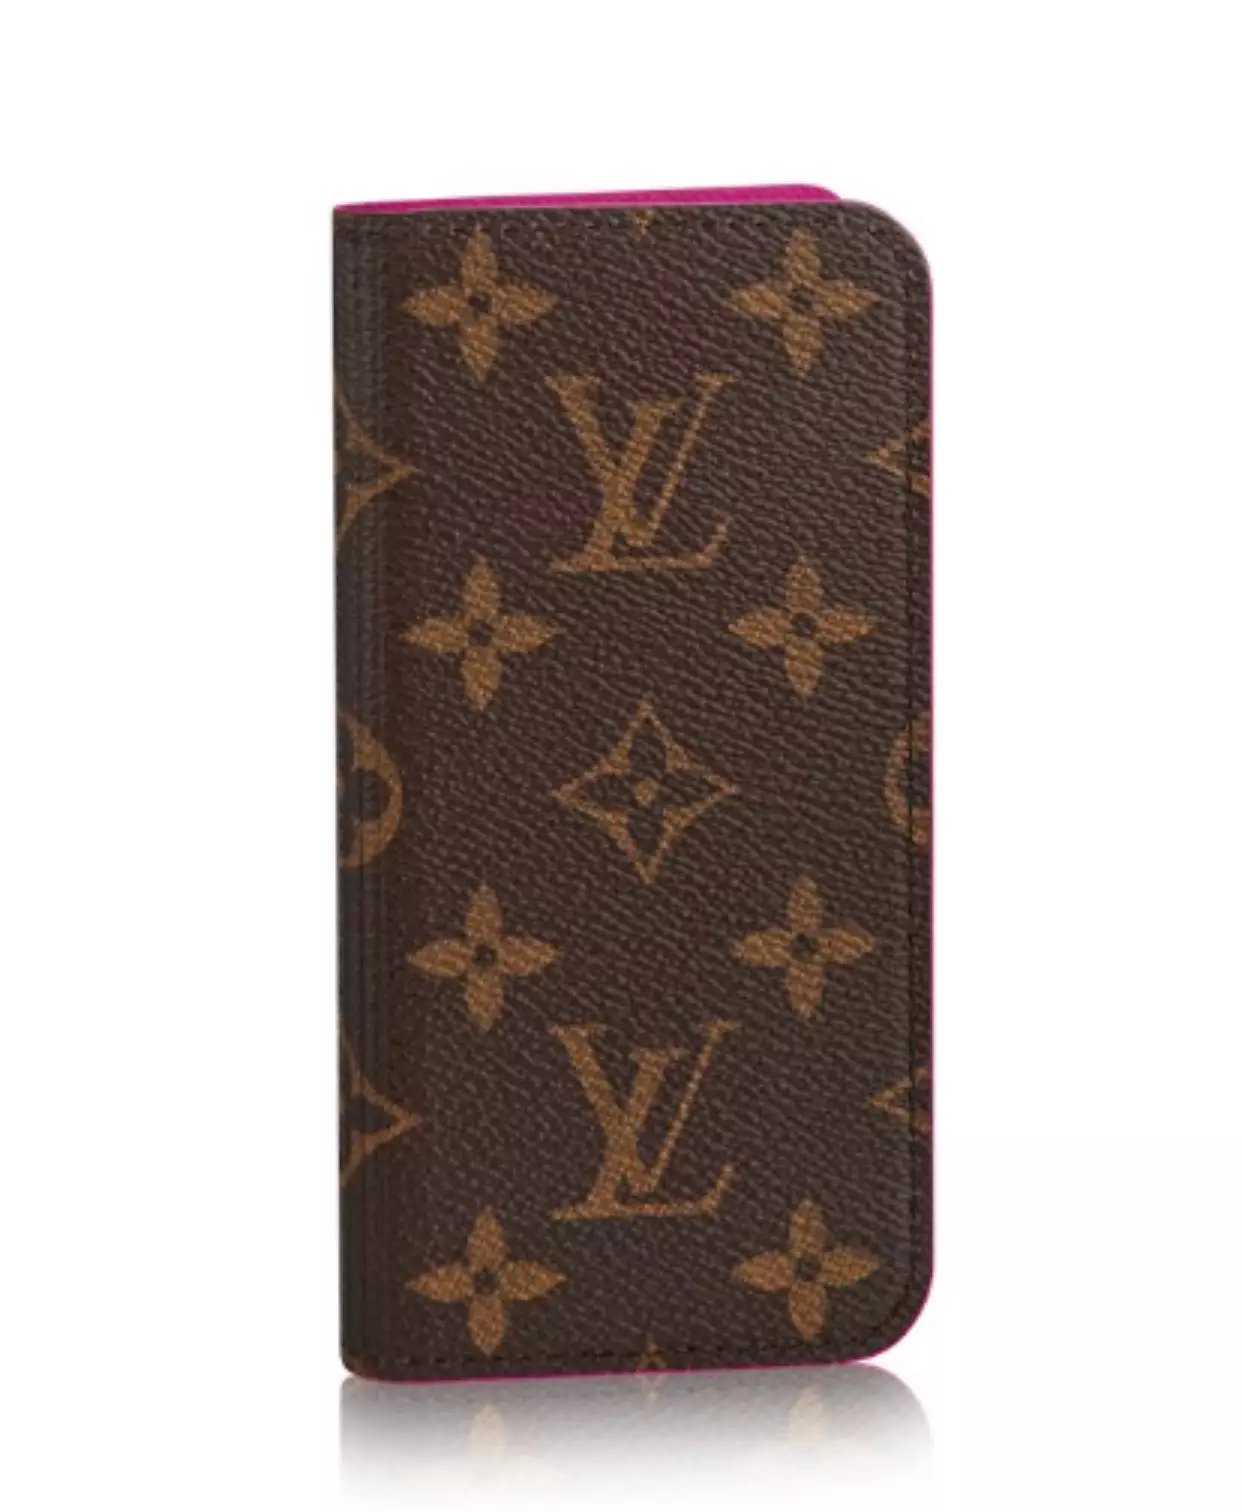 apple iphone 8 Plus cover best cases iphone 8 Plus Louis Vuitton iphone 8 Plus case iphone cases for phone iphone case iphone designer cases phone cover maker iPhone 8 Plusg cases iphone 8 Plus mophie juice pack plus